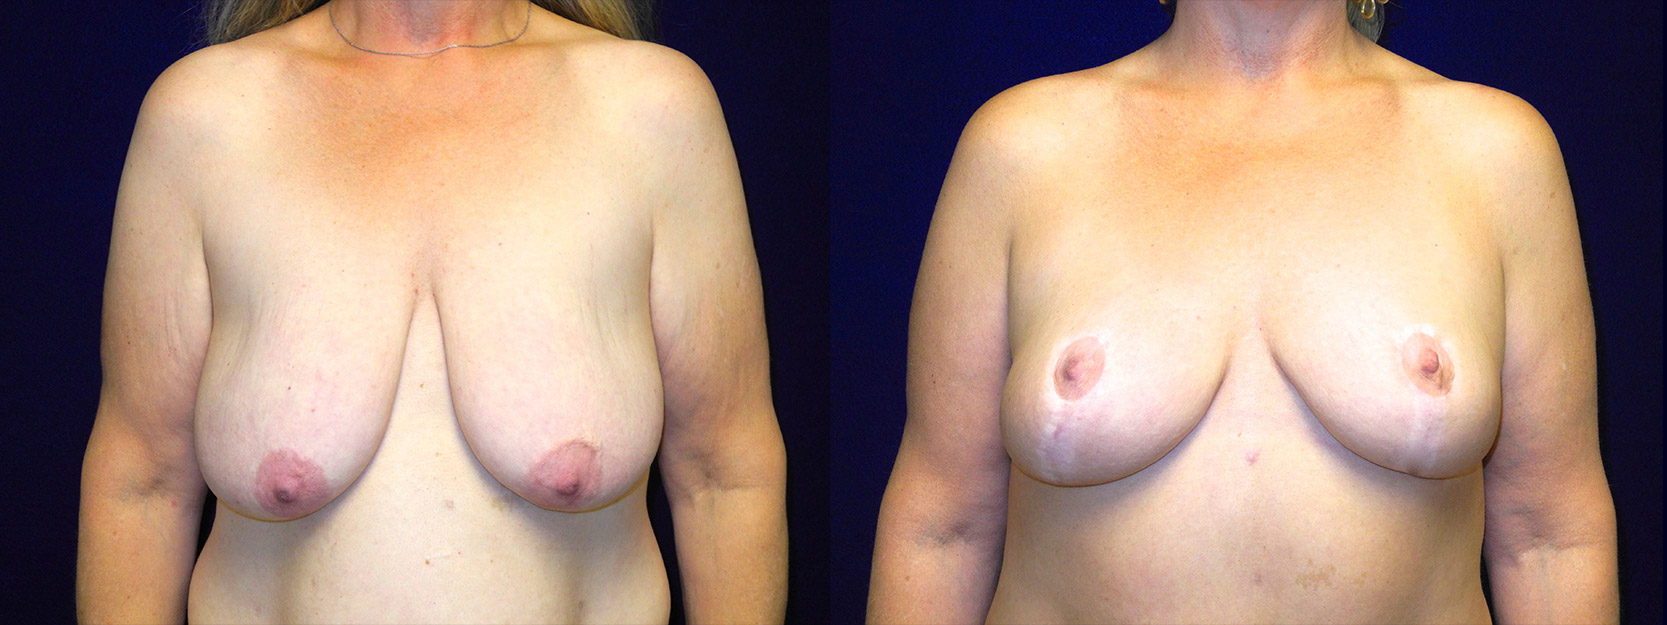 Frontal View - Breast Lift After Massive Weight Loss